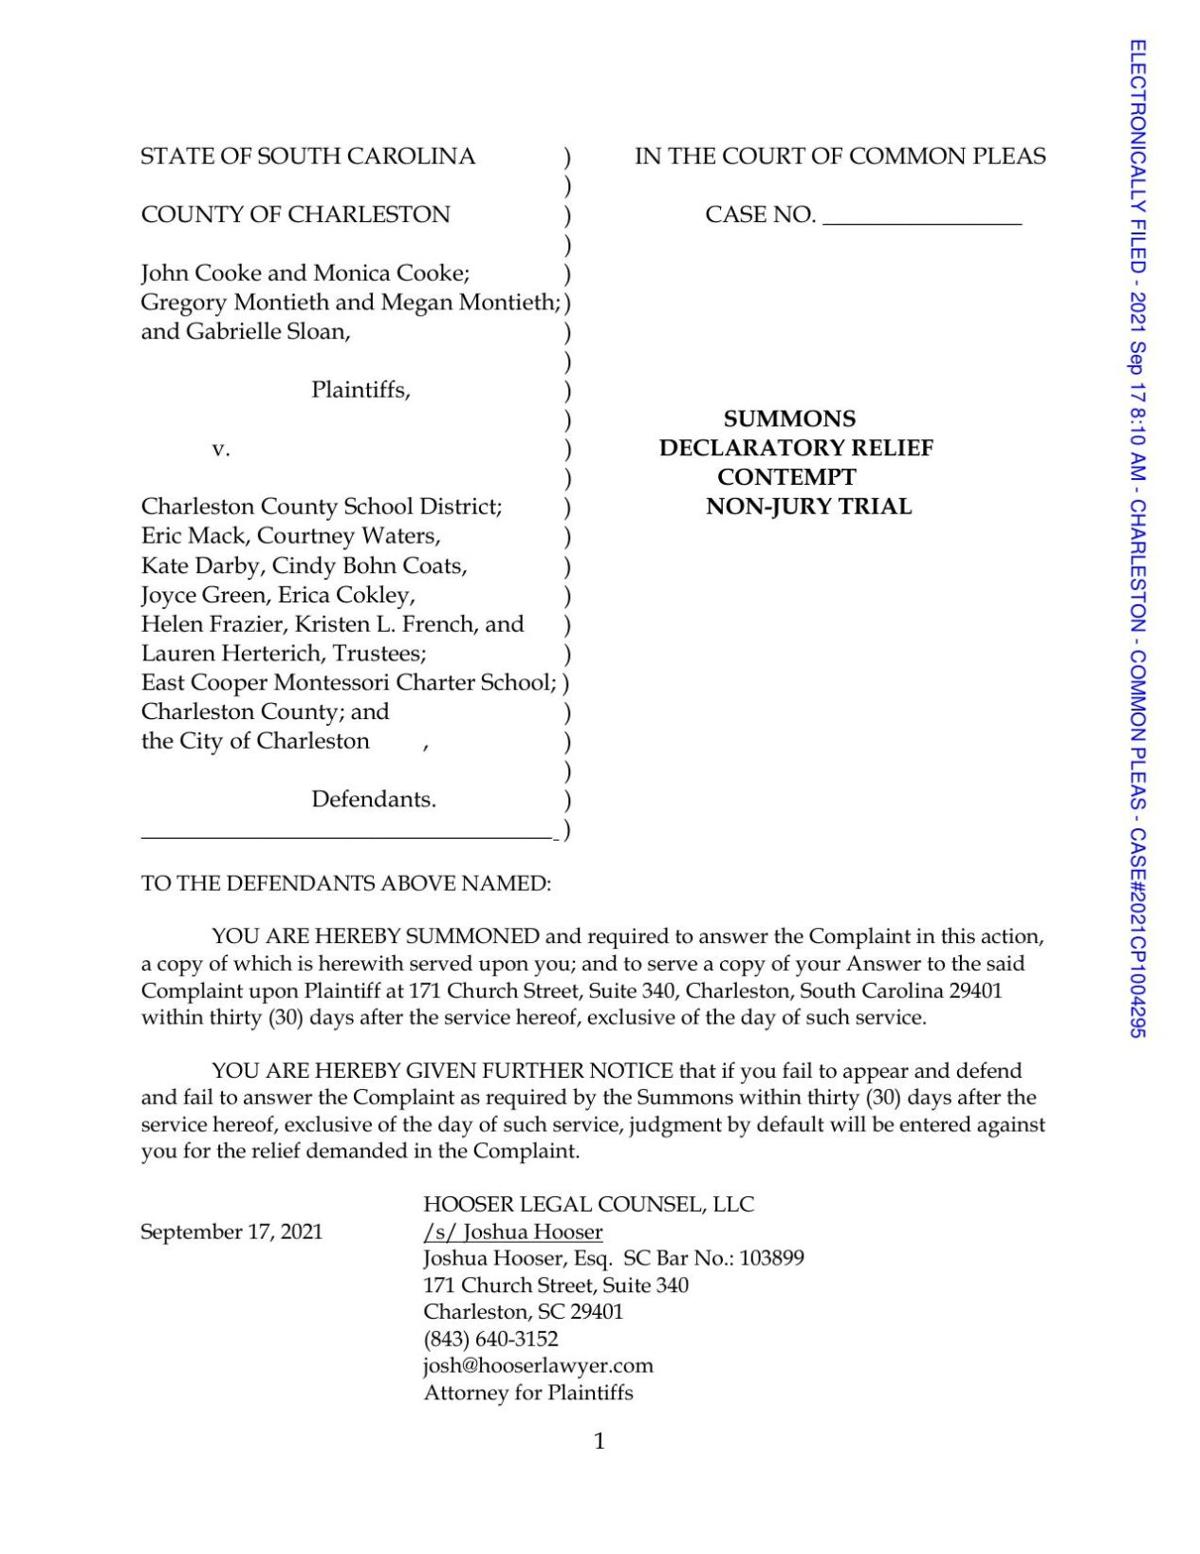 Lawsuit against Charleston County District Schools